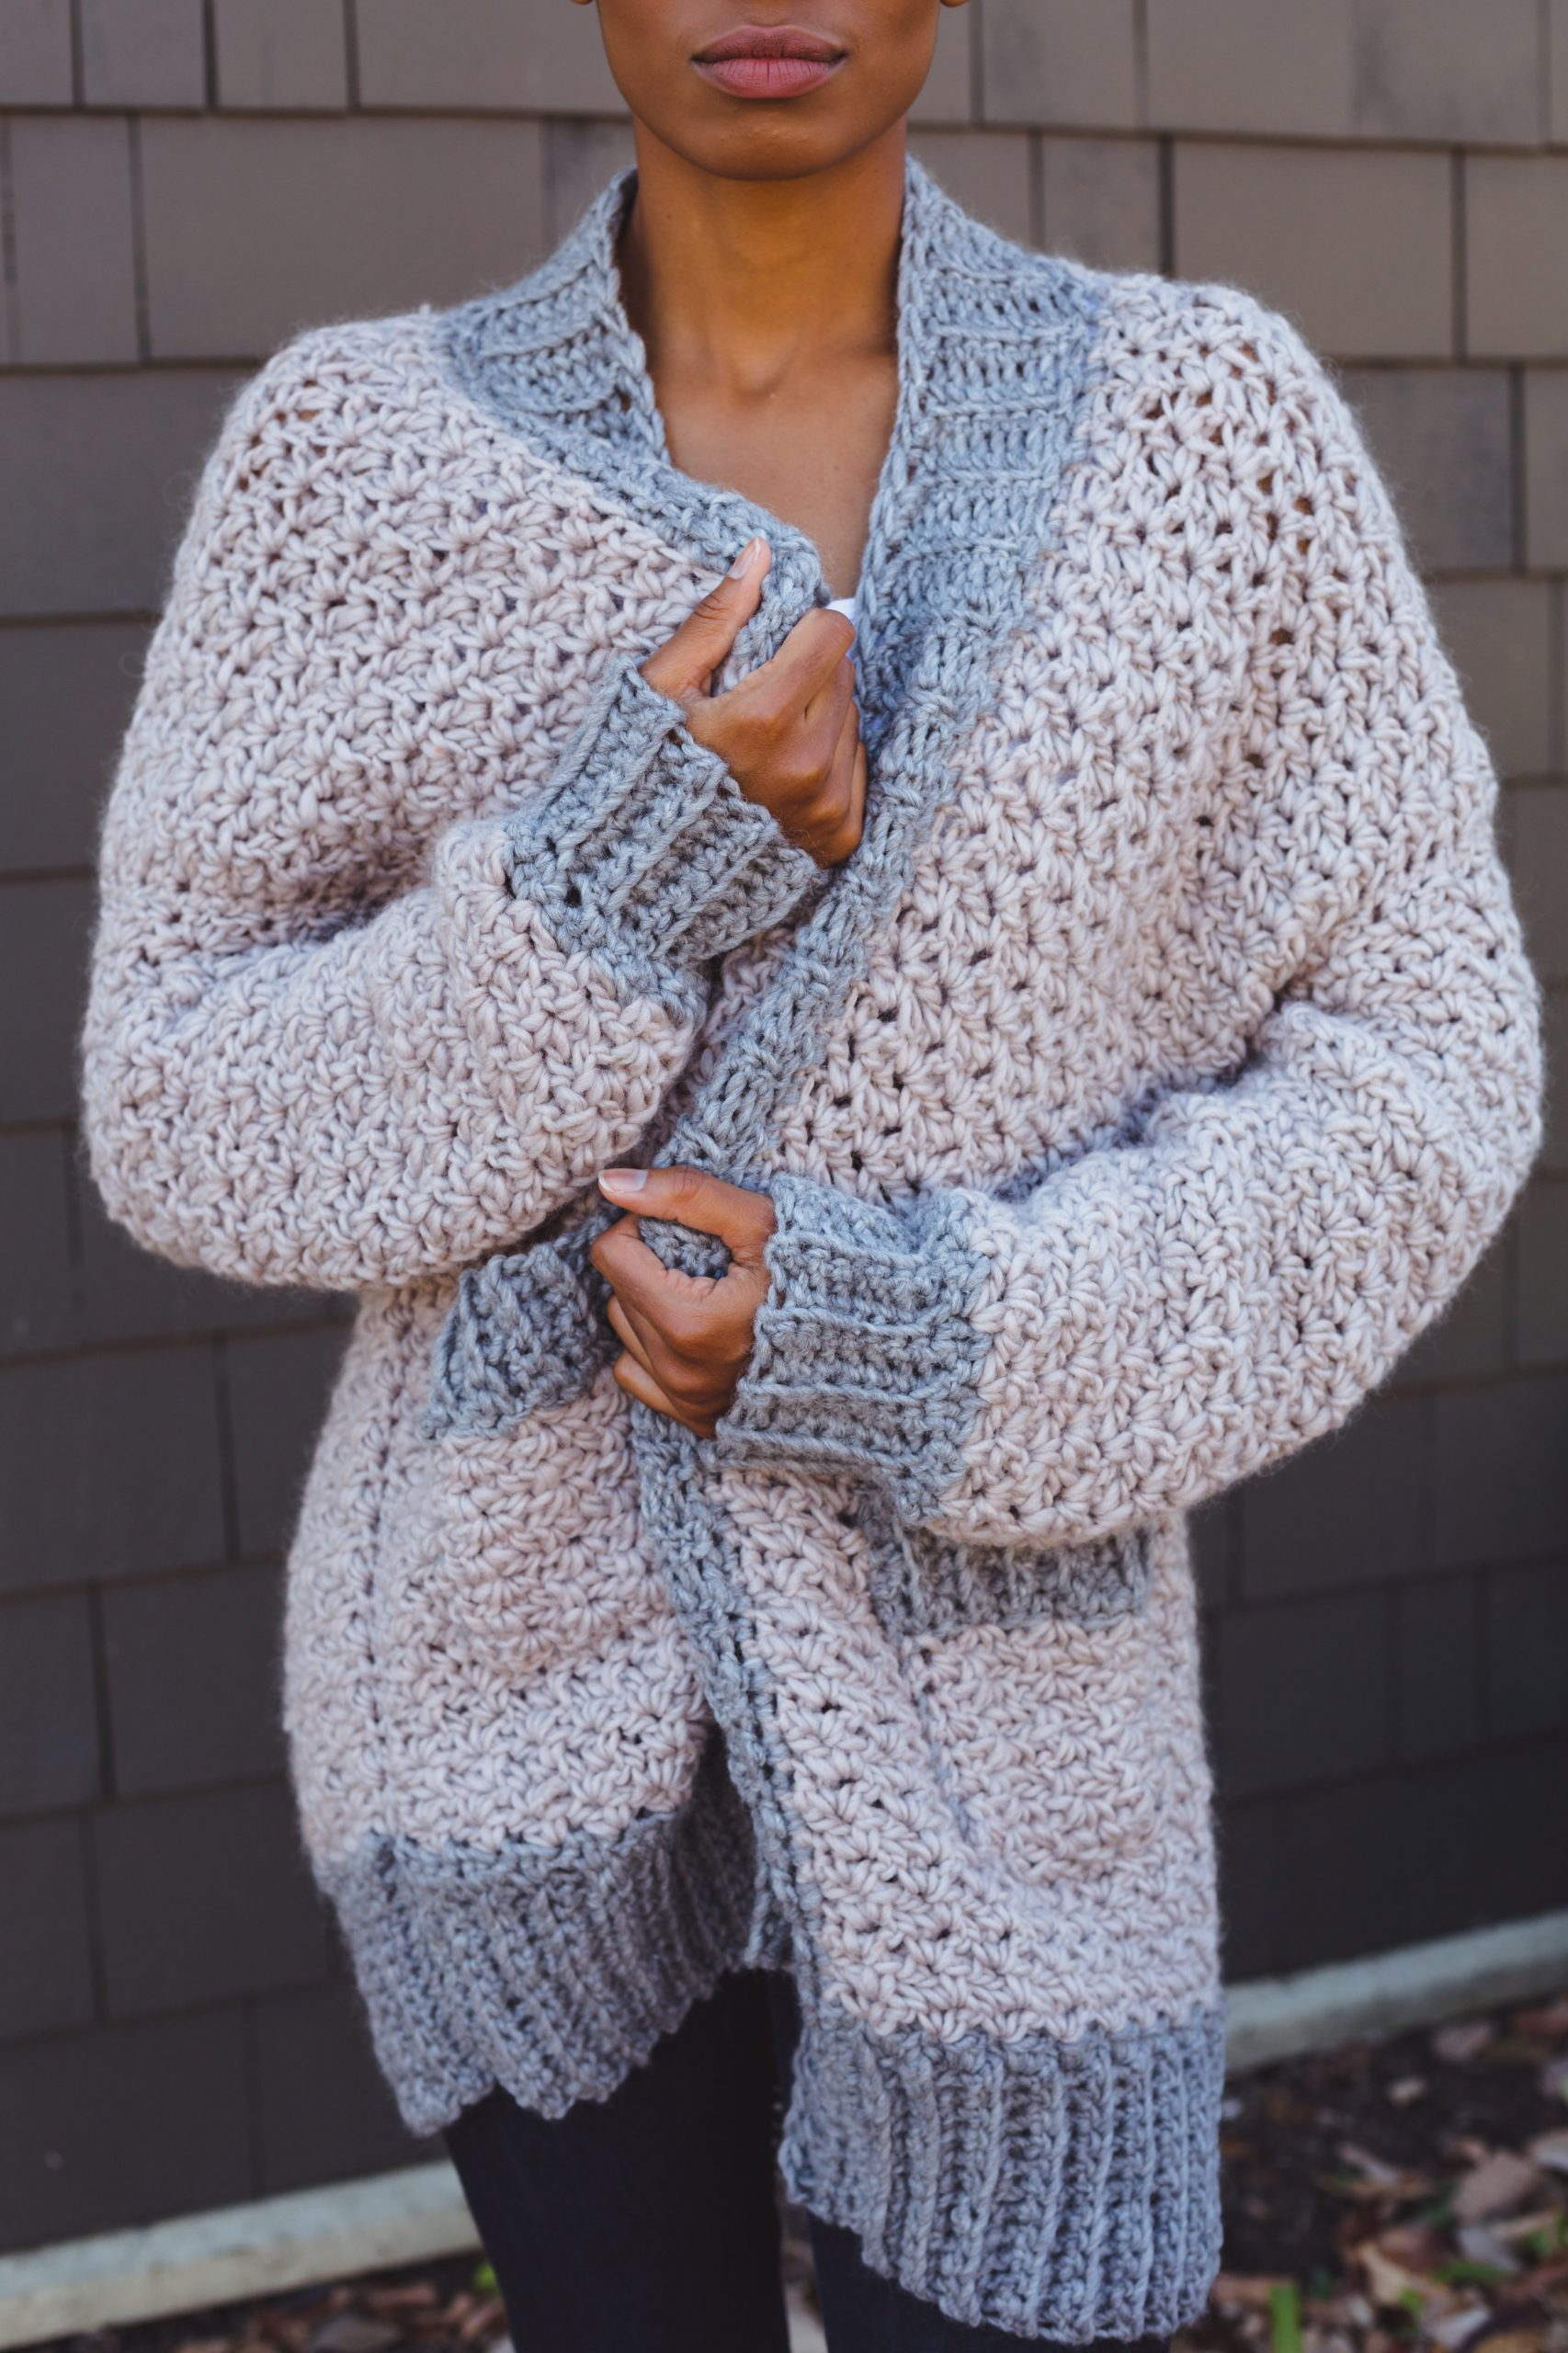 6627b3435507d TL Yarn Crafts - Relaxed Cardis   Cocoons  9 Cozy Crochet Patterns ...